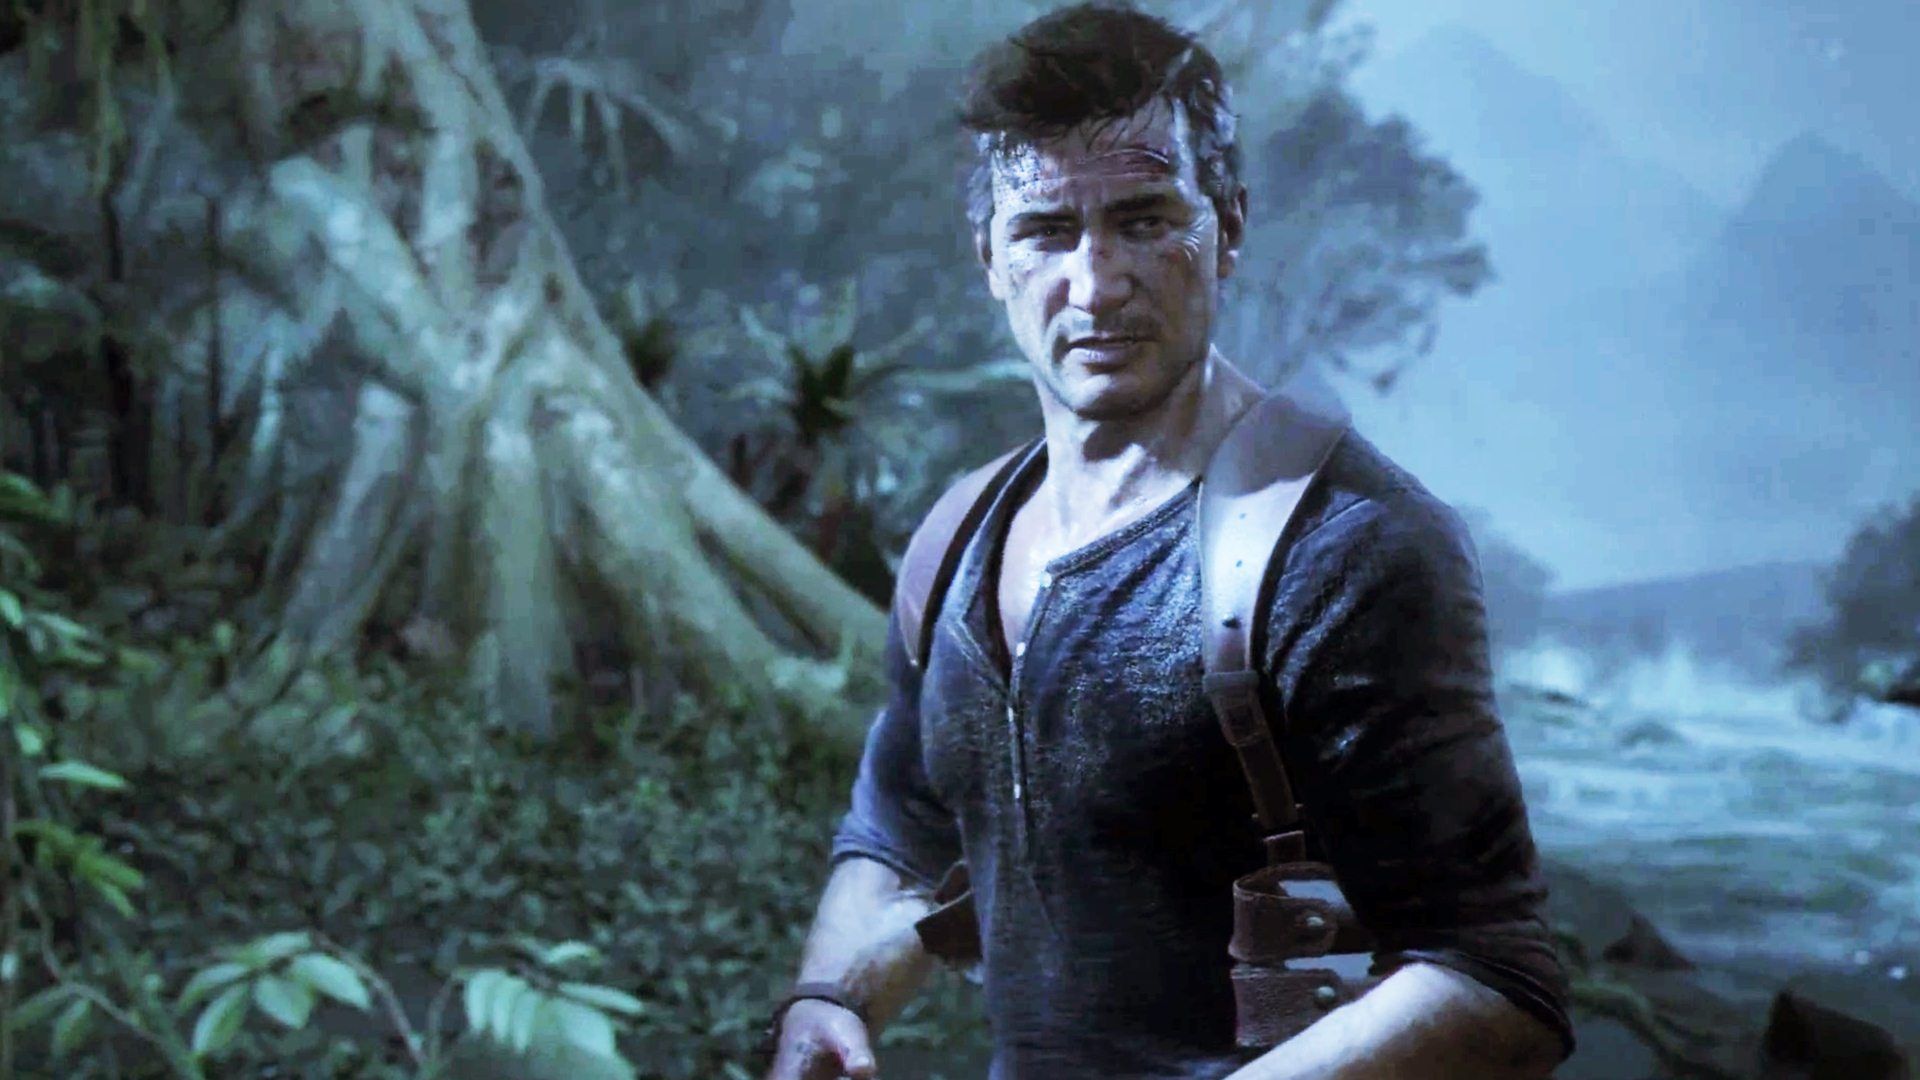 Ps4 exclusive uncharted 4 official box art revealed by - Uncharted 4 wallpaper ps4 ...